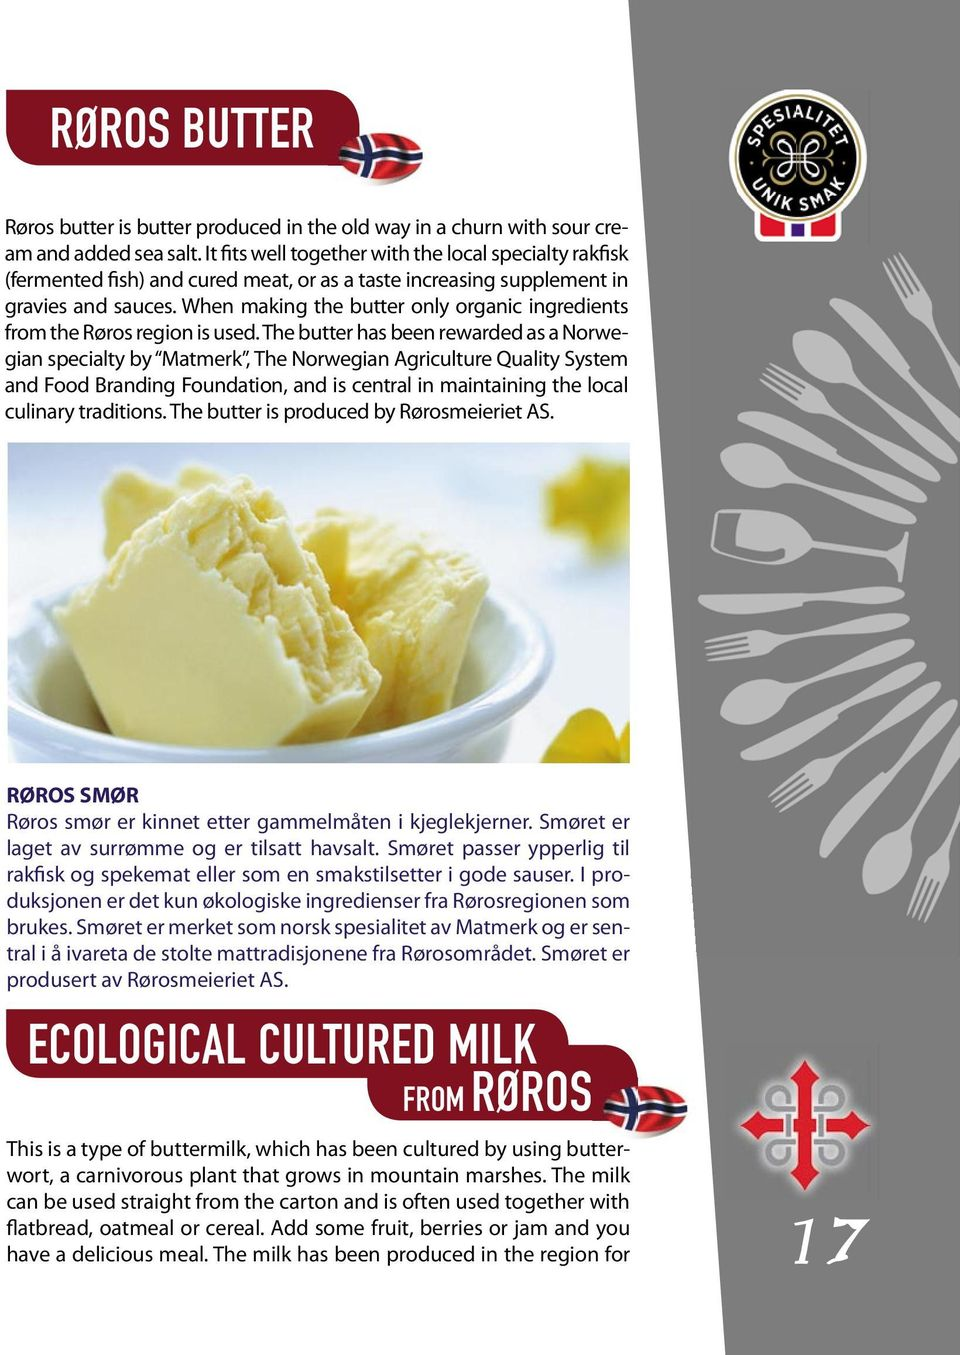 When making the butter only organic ingredients from the Røros region is used.